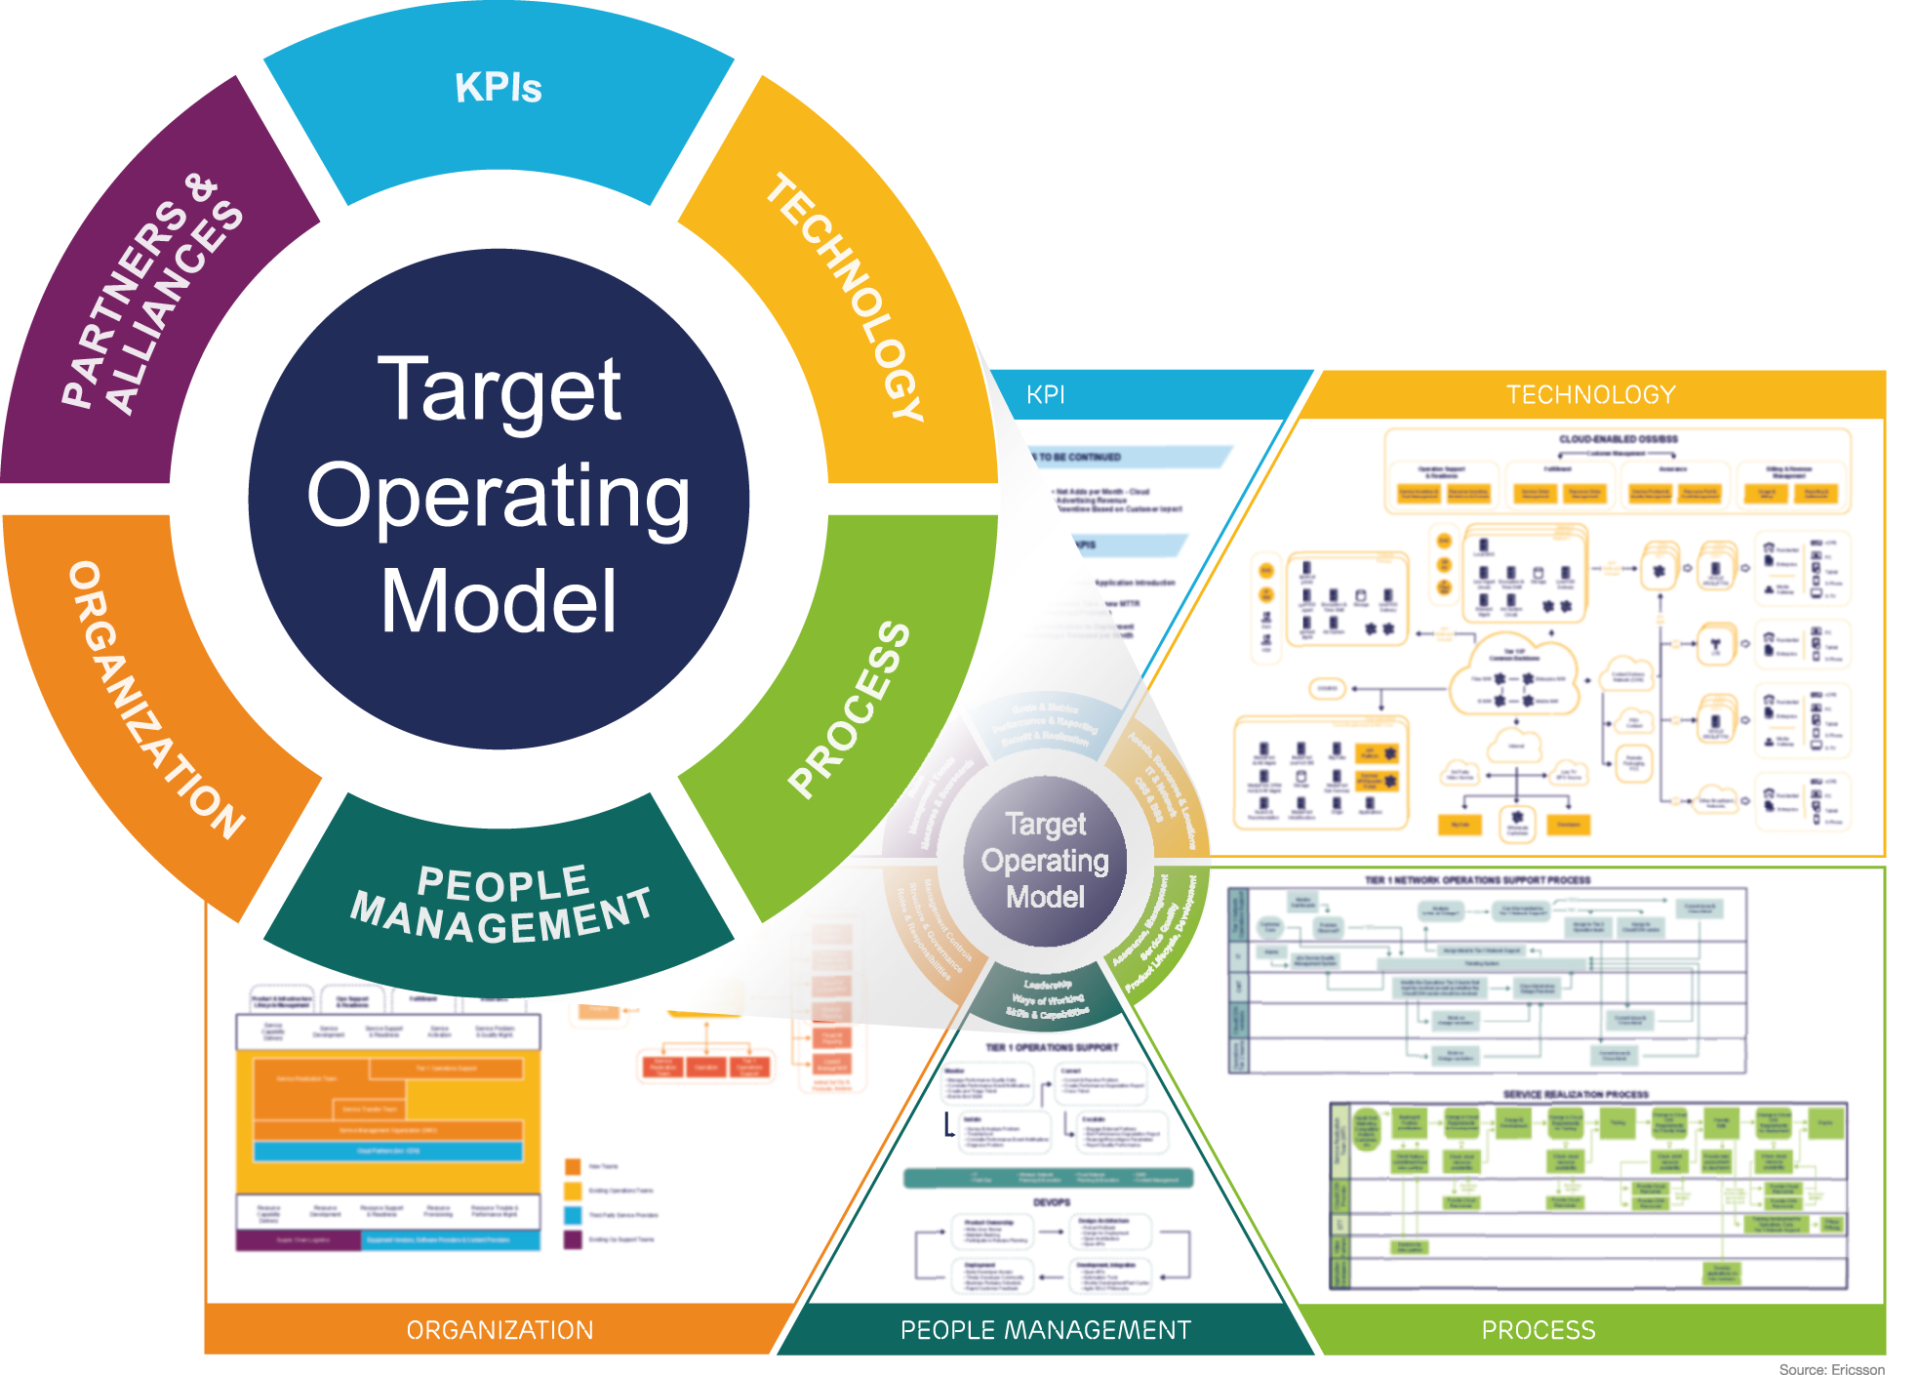 The path to a digital operating model - TM Forum Inform